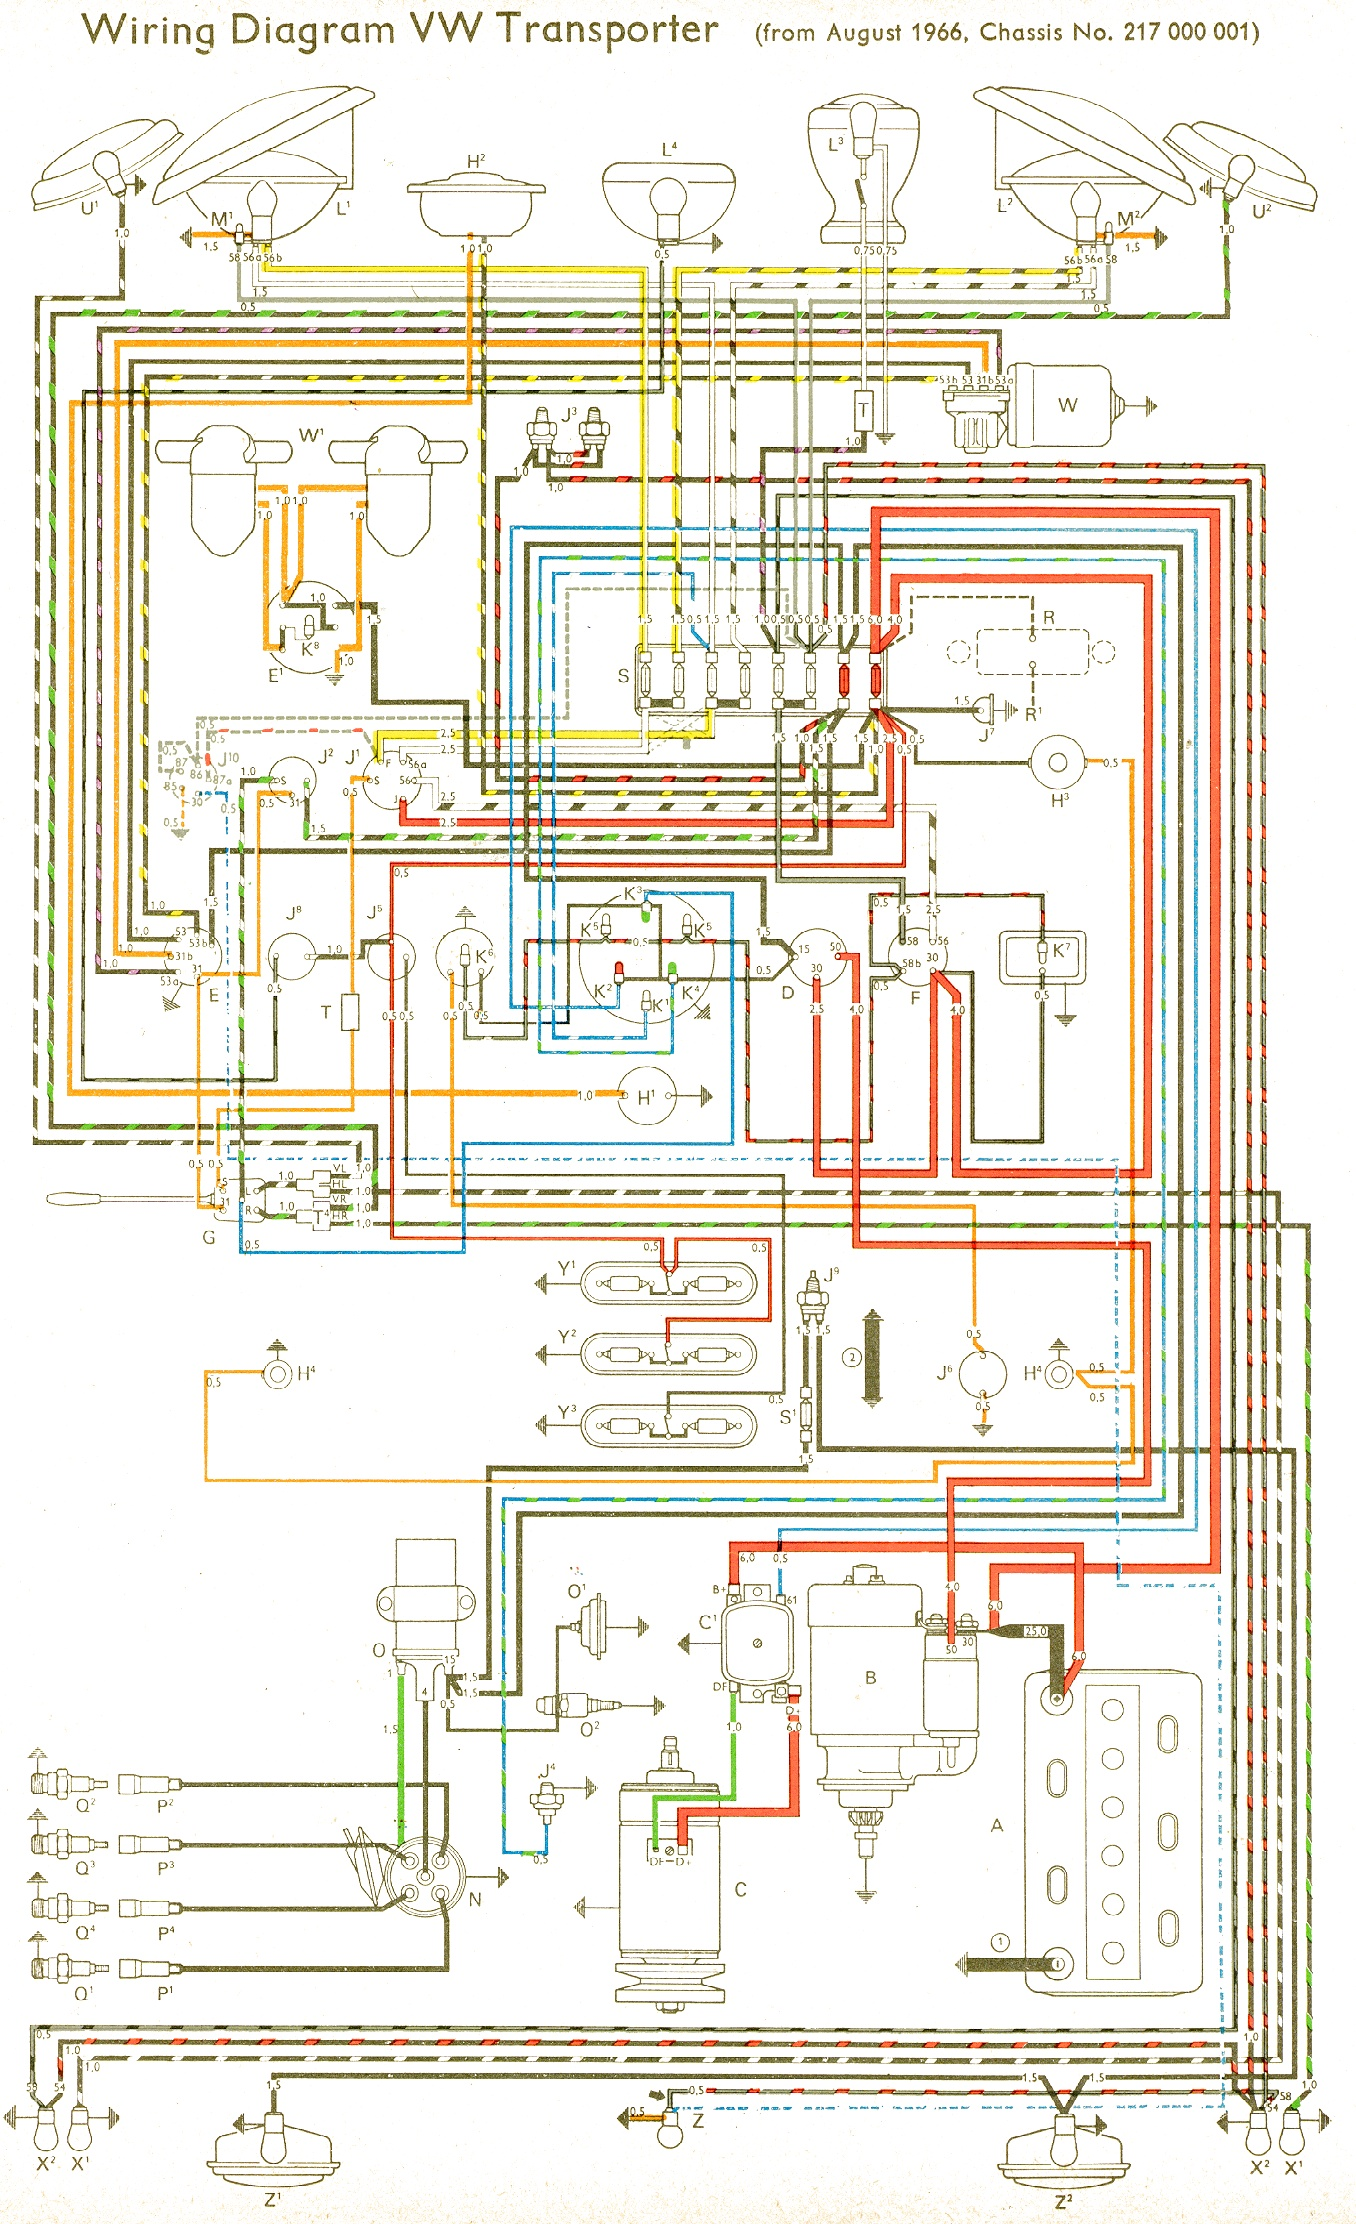 bus 66 bus wiring diagram vw wiring harness diagram \u2022 wiring diagrams j 1971 vw bus wiring diagram at honlapkeszites.co